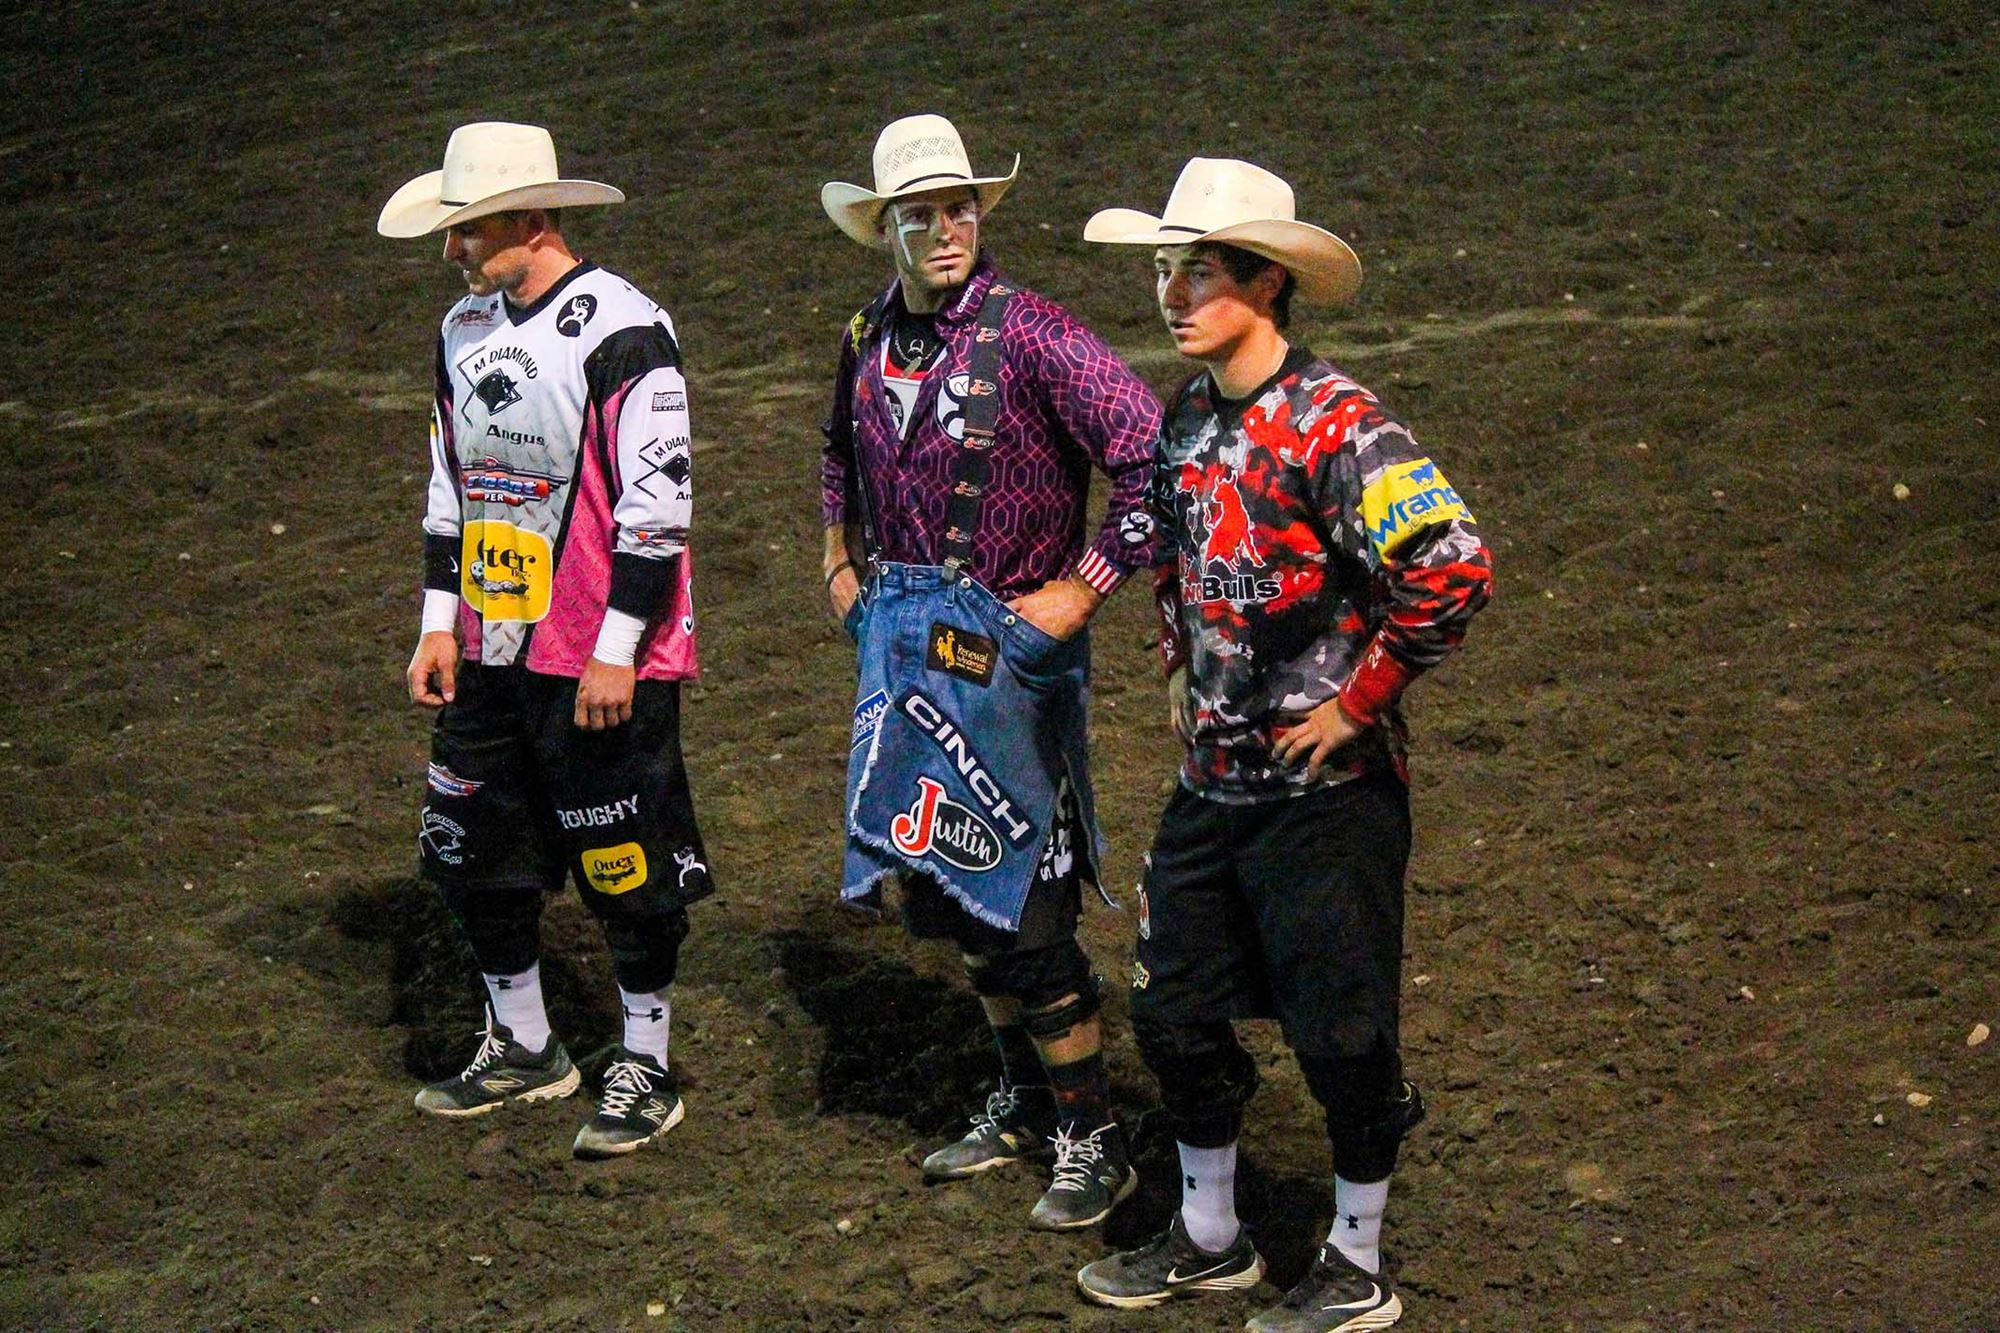 Bullfighters Nate Jestes, Dusty Tucjness, and Miles Barry